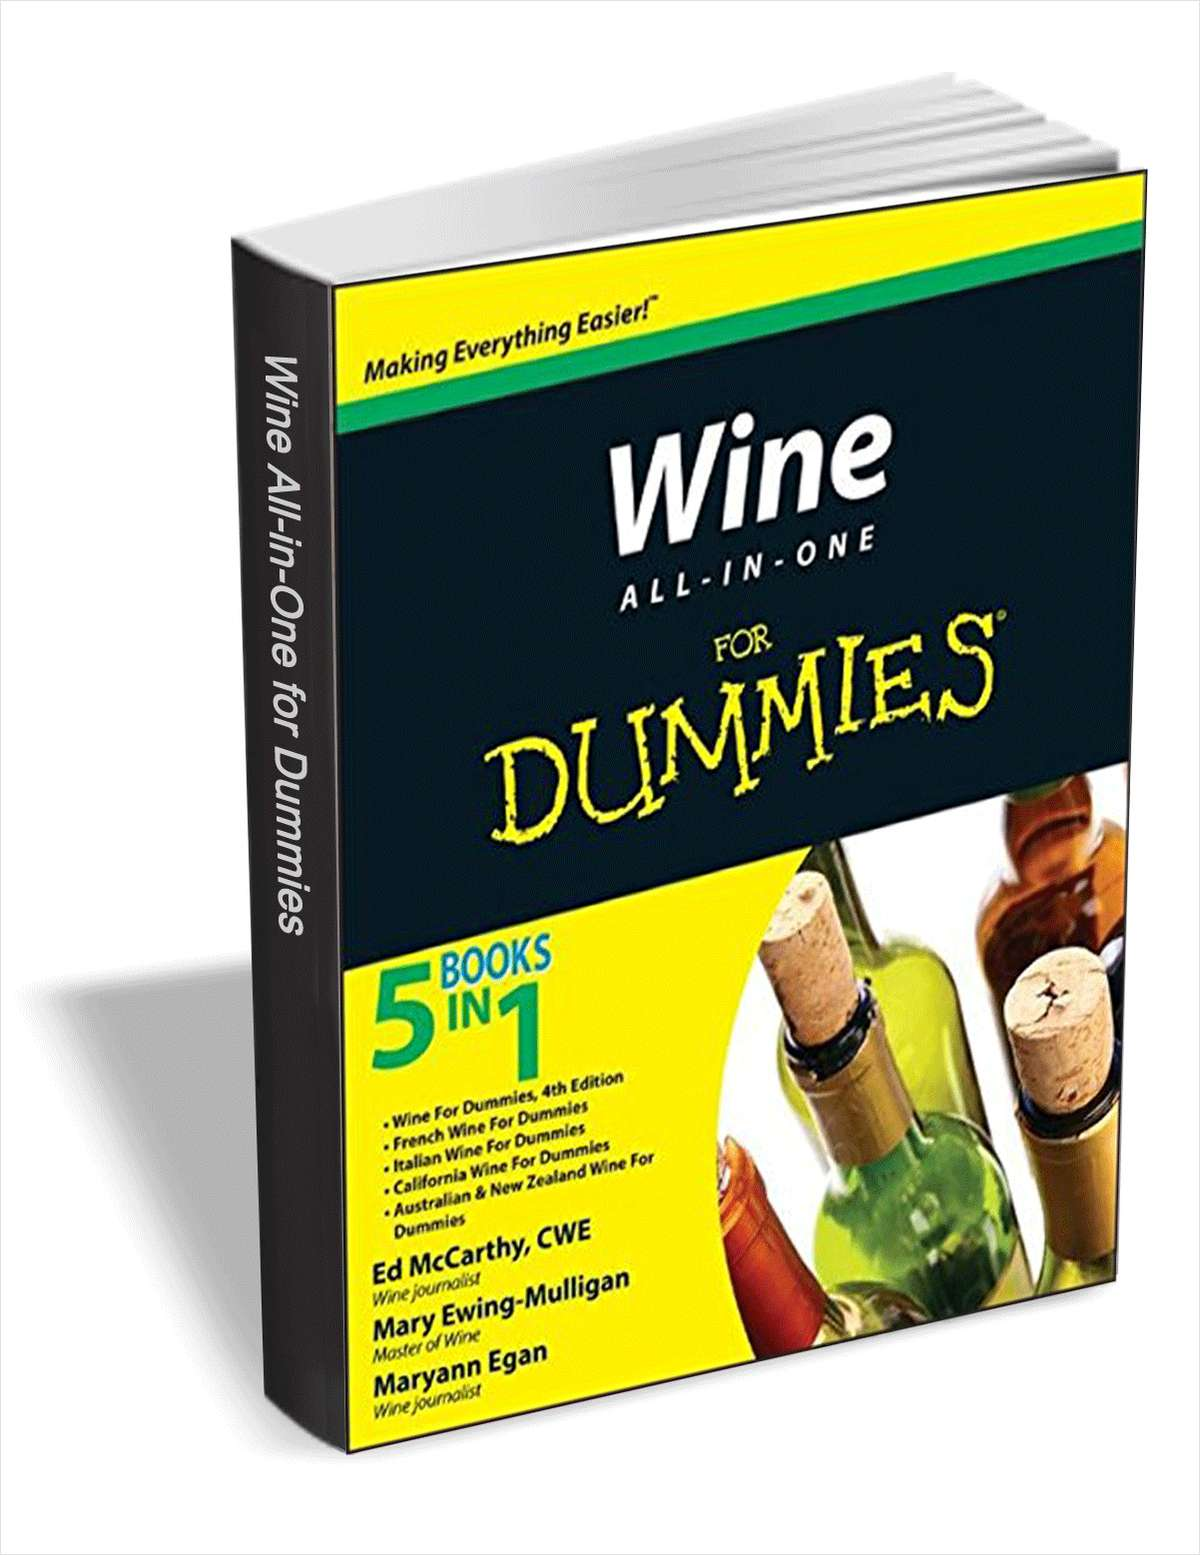 Wine All-In-One For Dummies ($16 Value) FREE For a Limited Time